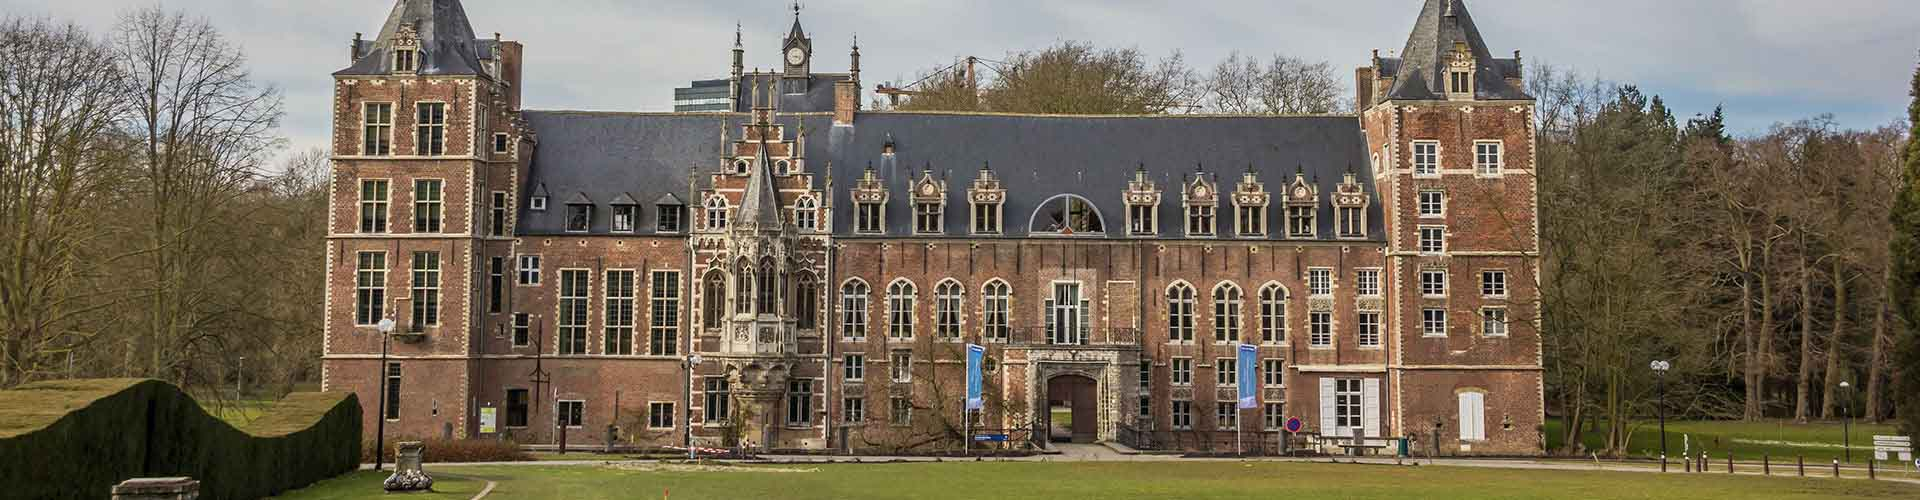 Leuven – Hostels in Leuven. Maps for Leuven, Photos and Reviews for each hostel in Leuven.